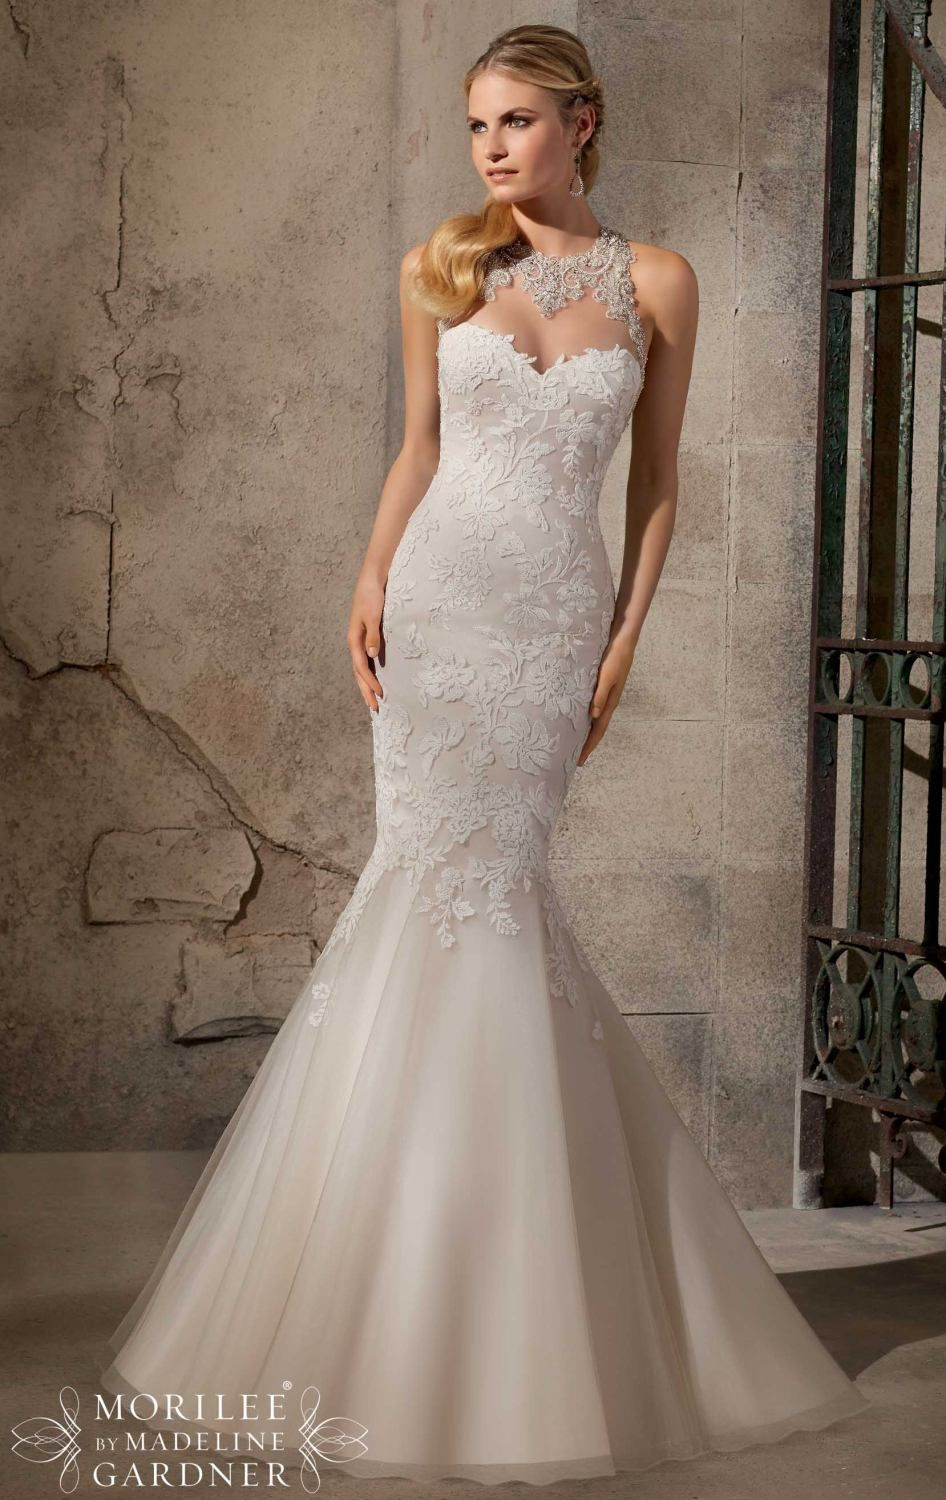 A gorgeous but expensive (1,500) Mori Lee 1,200 on house of brides ...